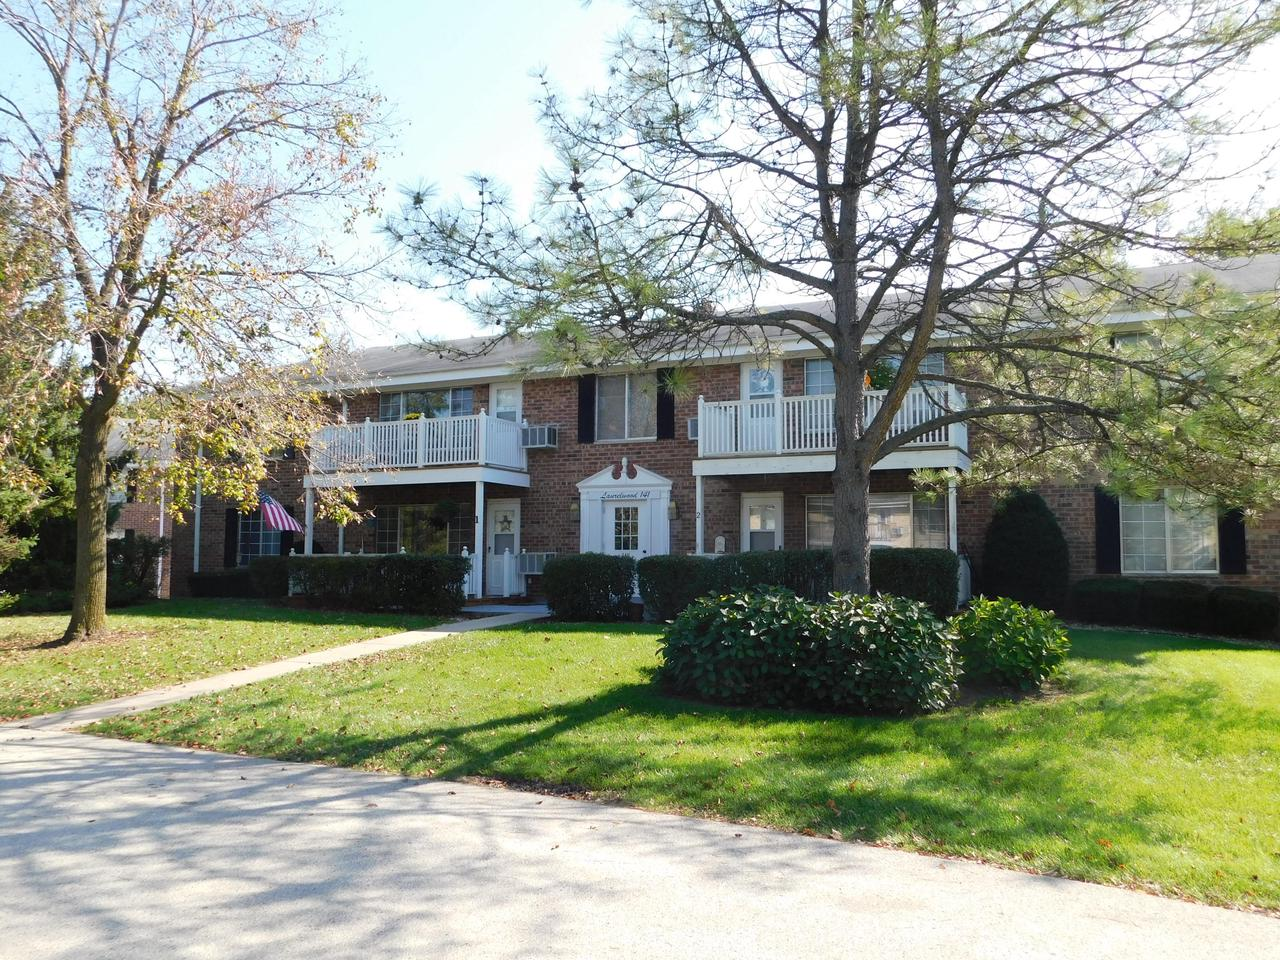 Exceptional and well maintained second floor unit in move in ready condition!  Enter the unit to an open concept design with a huge living room and dining room + a large picture window and access to balcony deck area.  Spacious working kitchen with lots of cabinets, working space + SS appliances.  Main full bath with tile floors, granite and LAUNDRY area !! Master bedroom offers walk in closet and private 1/2 bath with tile. Second bedroom has great decor and a double closet.  Bonus office/den room with a large closets.  This condo can be rented as a investment  opportunity.  Lower level garage offers one assigned parking spot and one assigned surface plus Storage Locker.  A must see unit !!